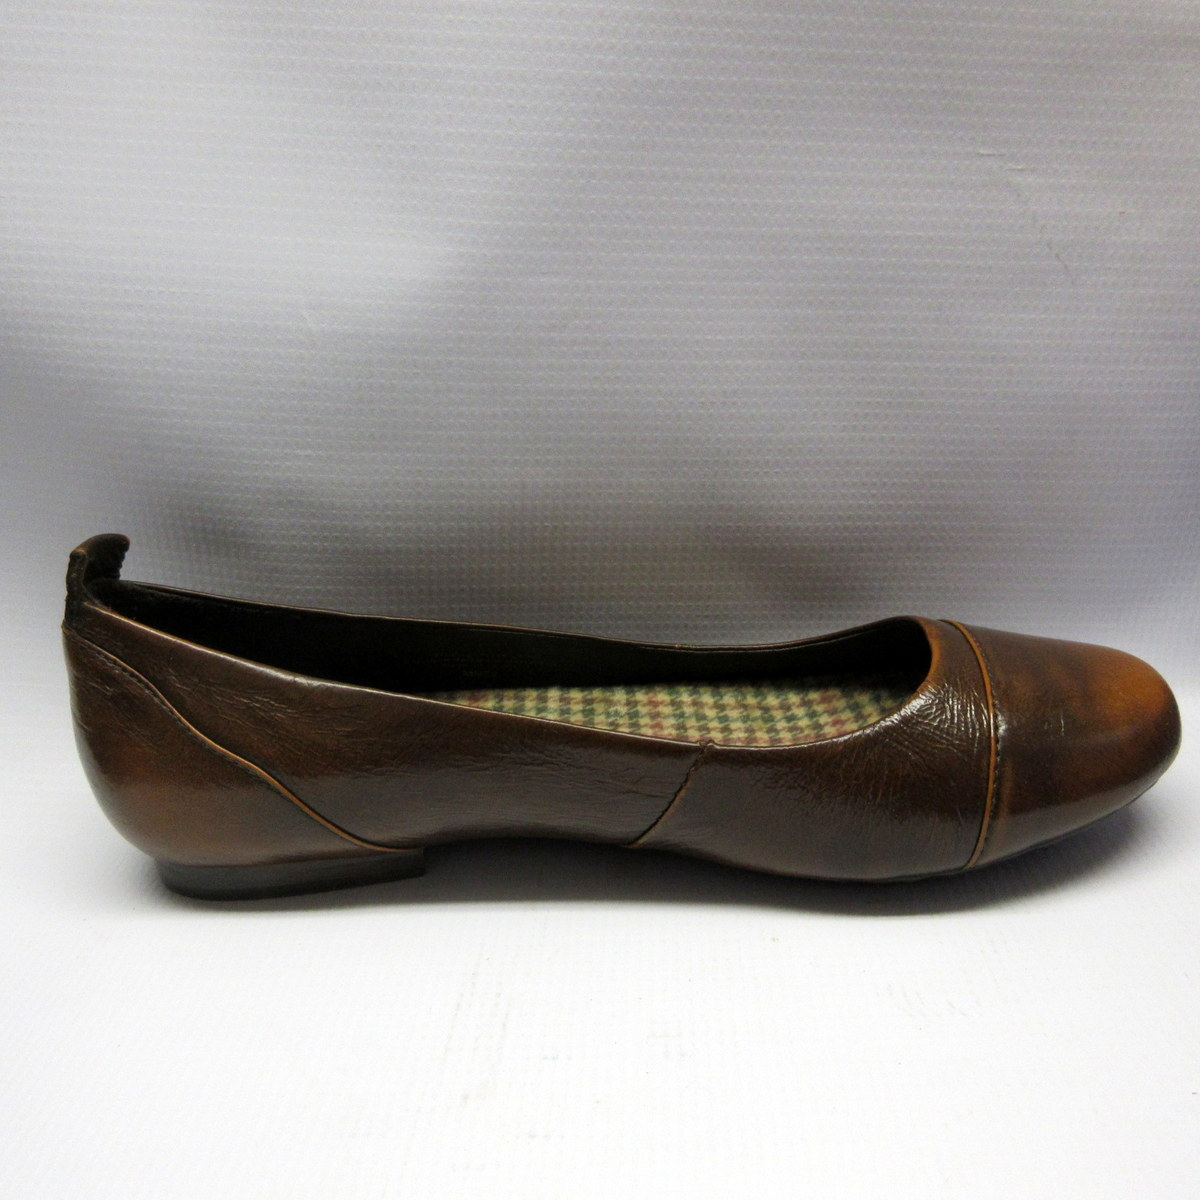 fe3fde279 Born Shoes Women Annibell in Whiskey Size 9 — Cabaline